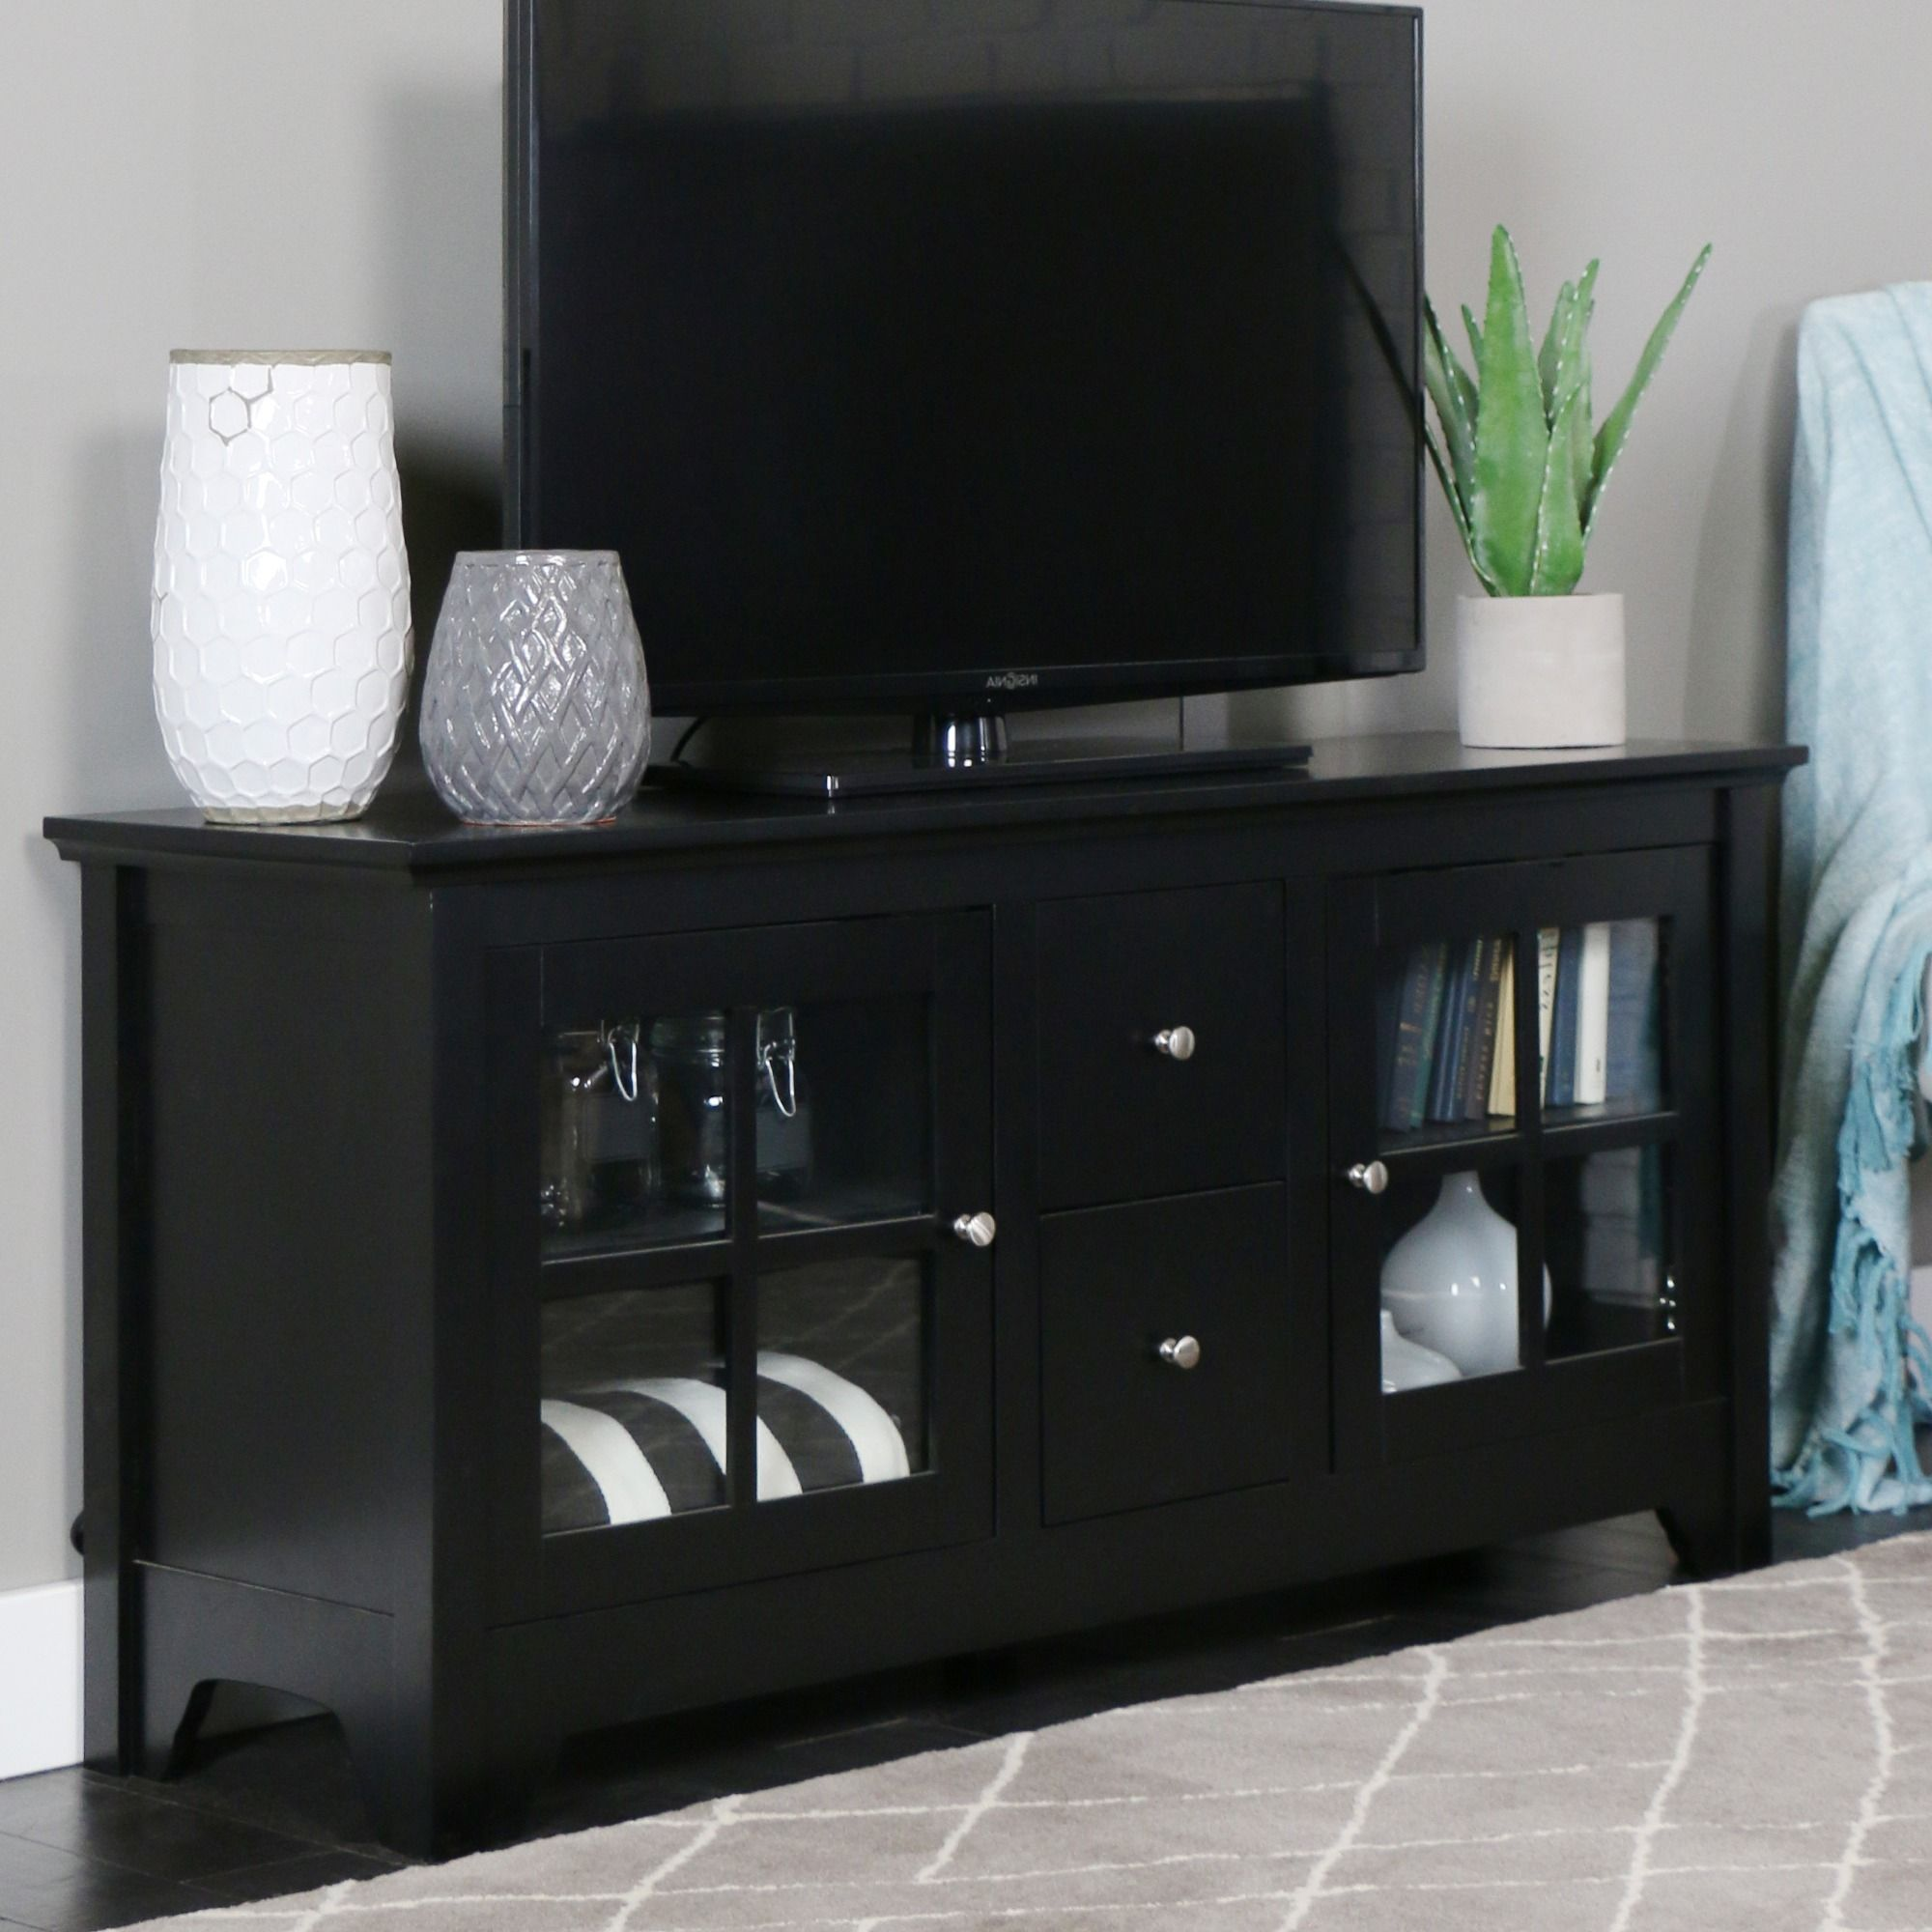 Update Your Living Room Decor With This Modern Solid Wood Tv Stand